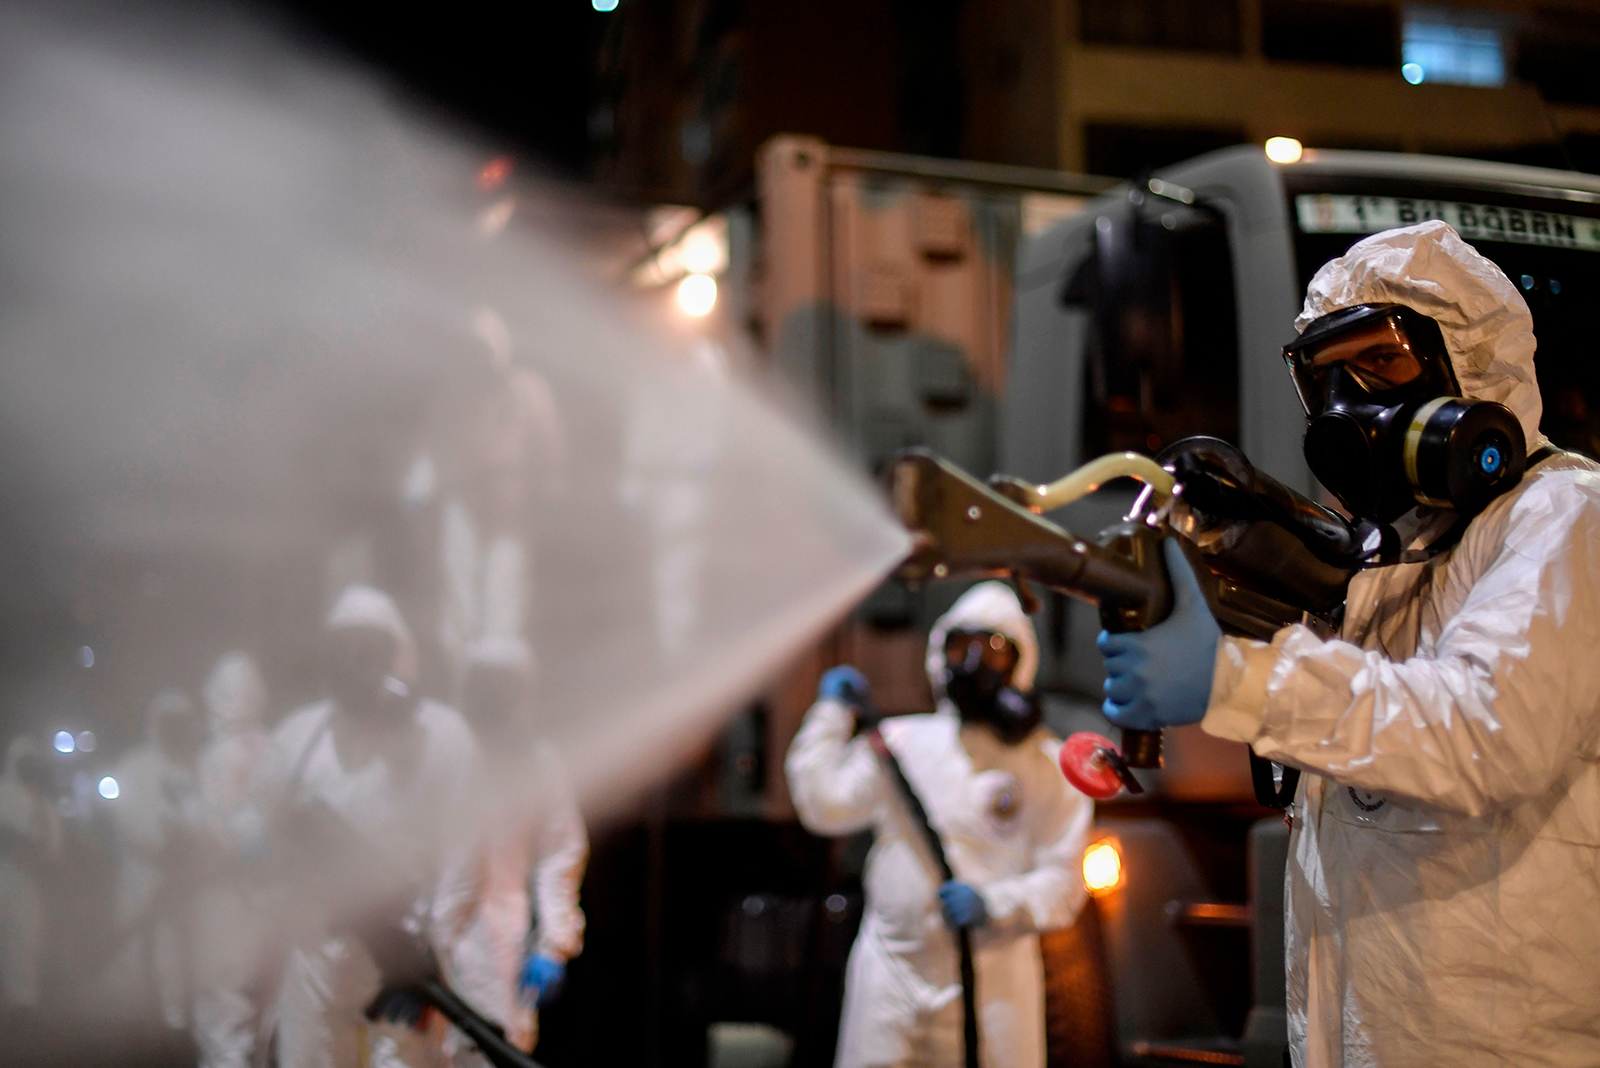 Soldiers from the 4th Military Region of the Brazilian Armed Forces are seen cleaning the outside as they take part in the cleaning and disinfection of the Municipal Market in the Belo Horizonte, state of Minas Gerais, Brazil on August 18.